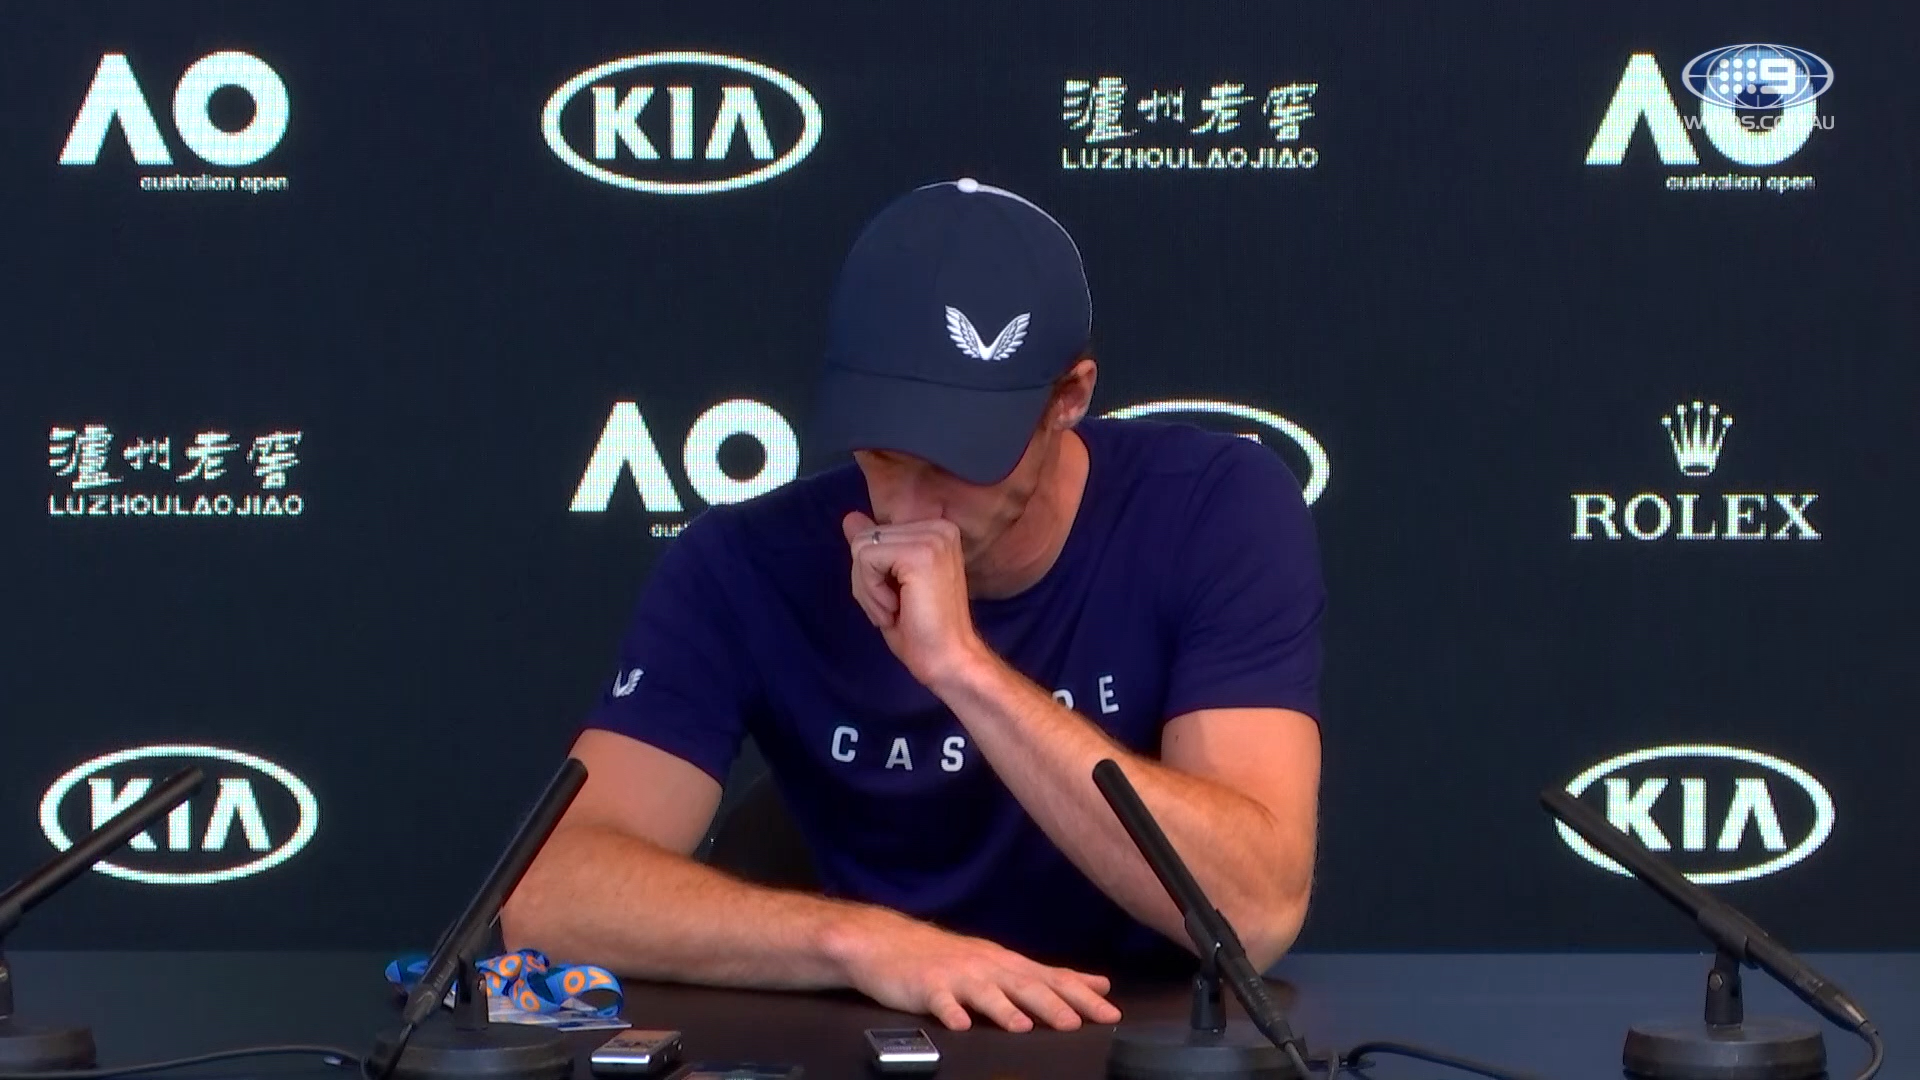 Andy Murray absolutely devastated in first attempt at his press conferece